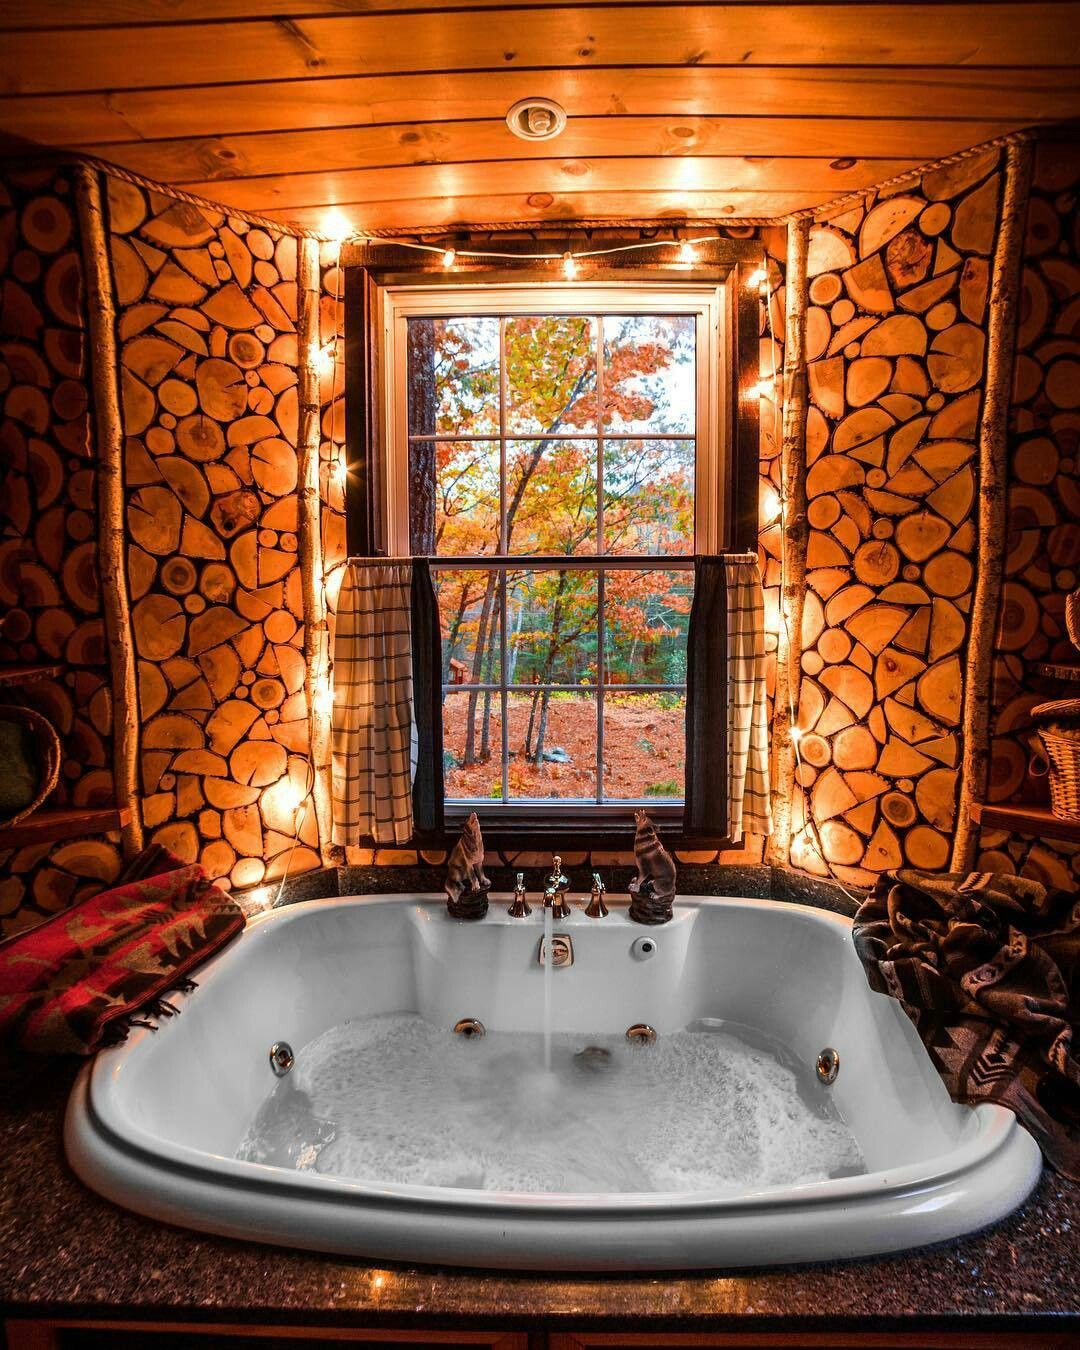 Love The Lights And The Open Window Luxury Tree Houses Indoor Jacuzzi Rustic House